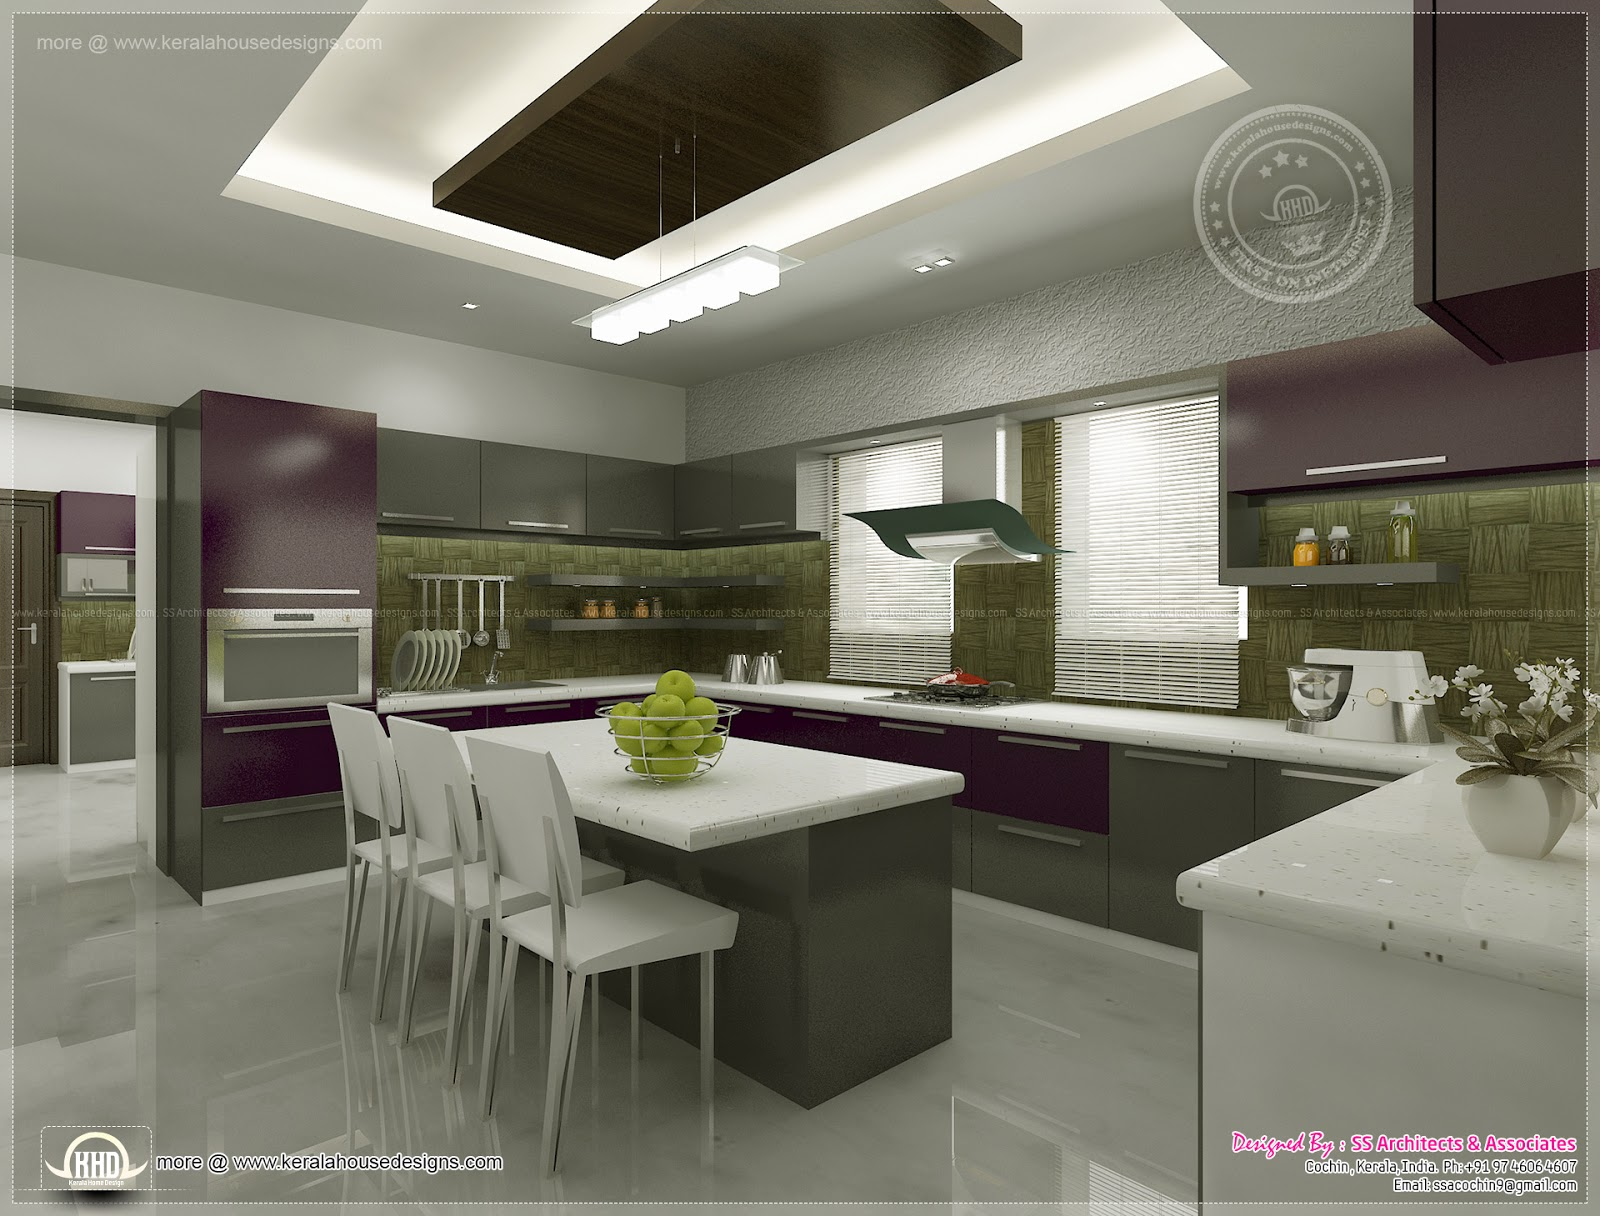 Kitchen interior views by ss architects cochin kerala for In home designer